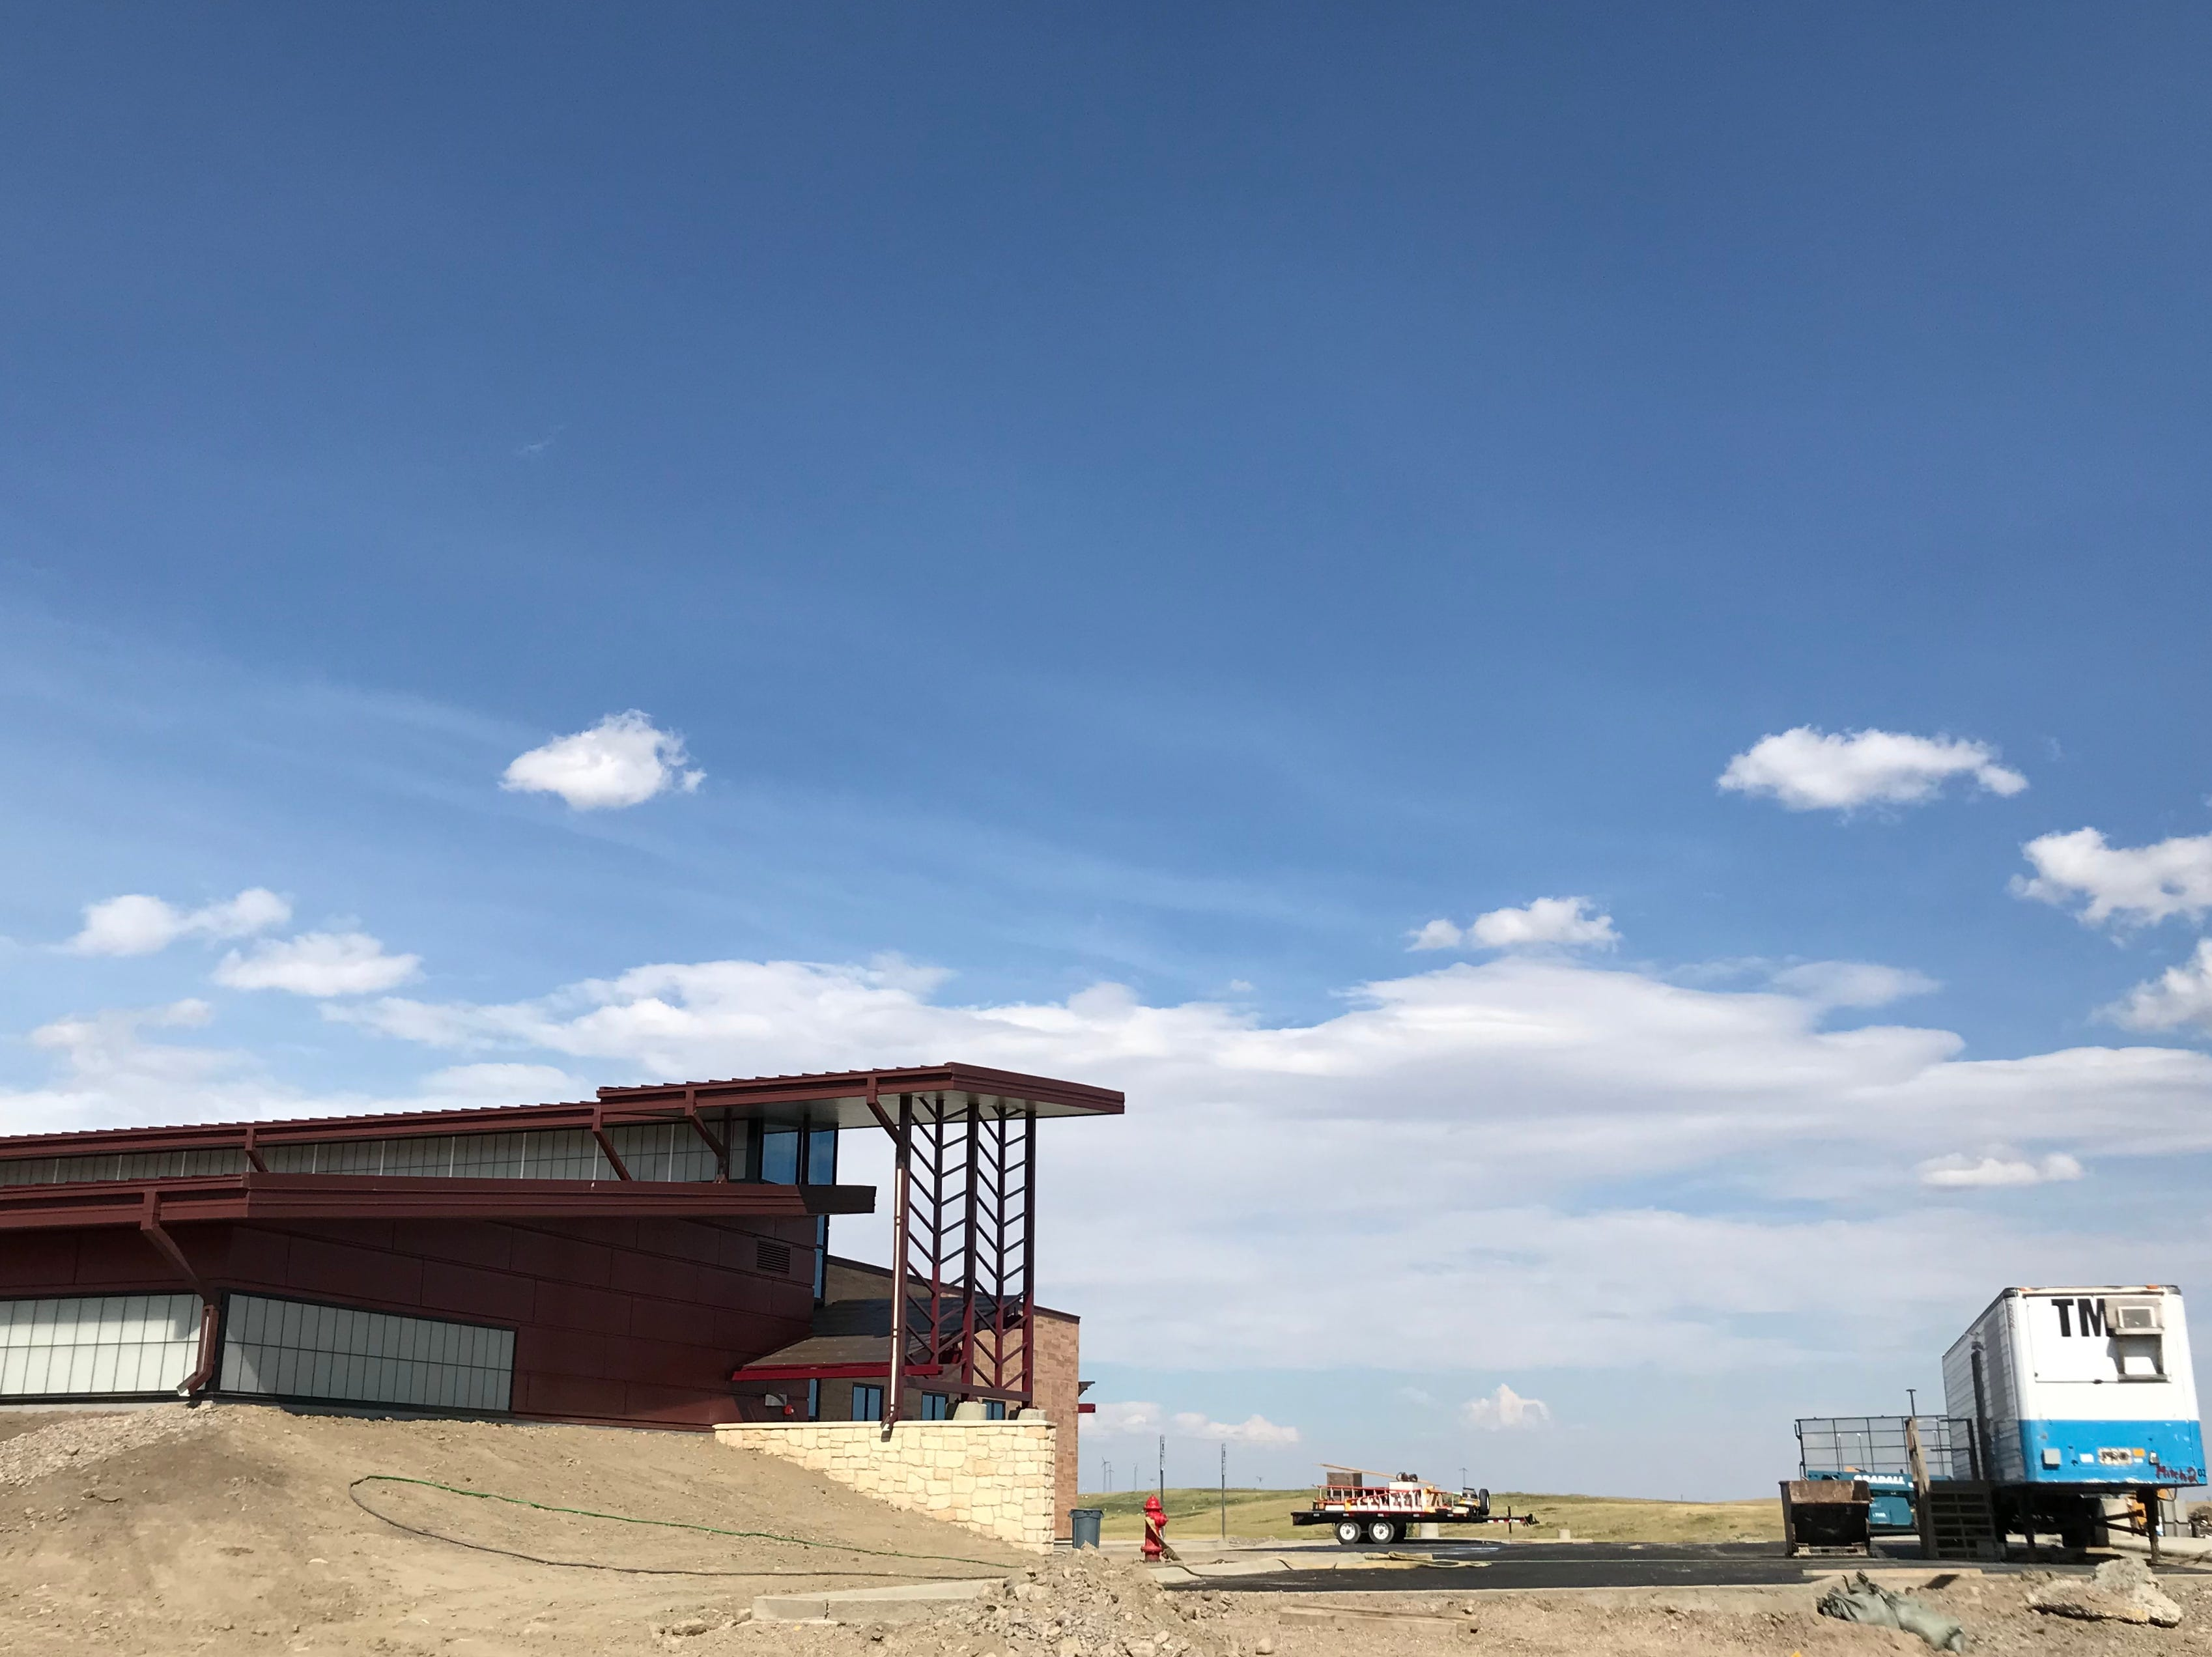 Construction this summer at Blackfeet Community College on the new new health science & education building, named Monday in honor of Elouise Cobell.